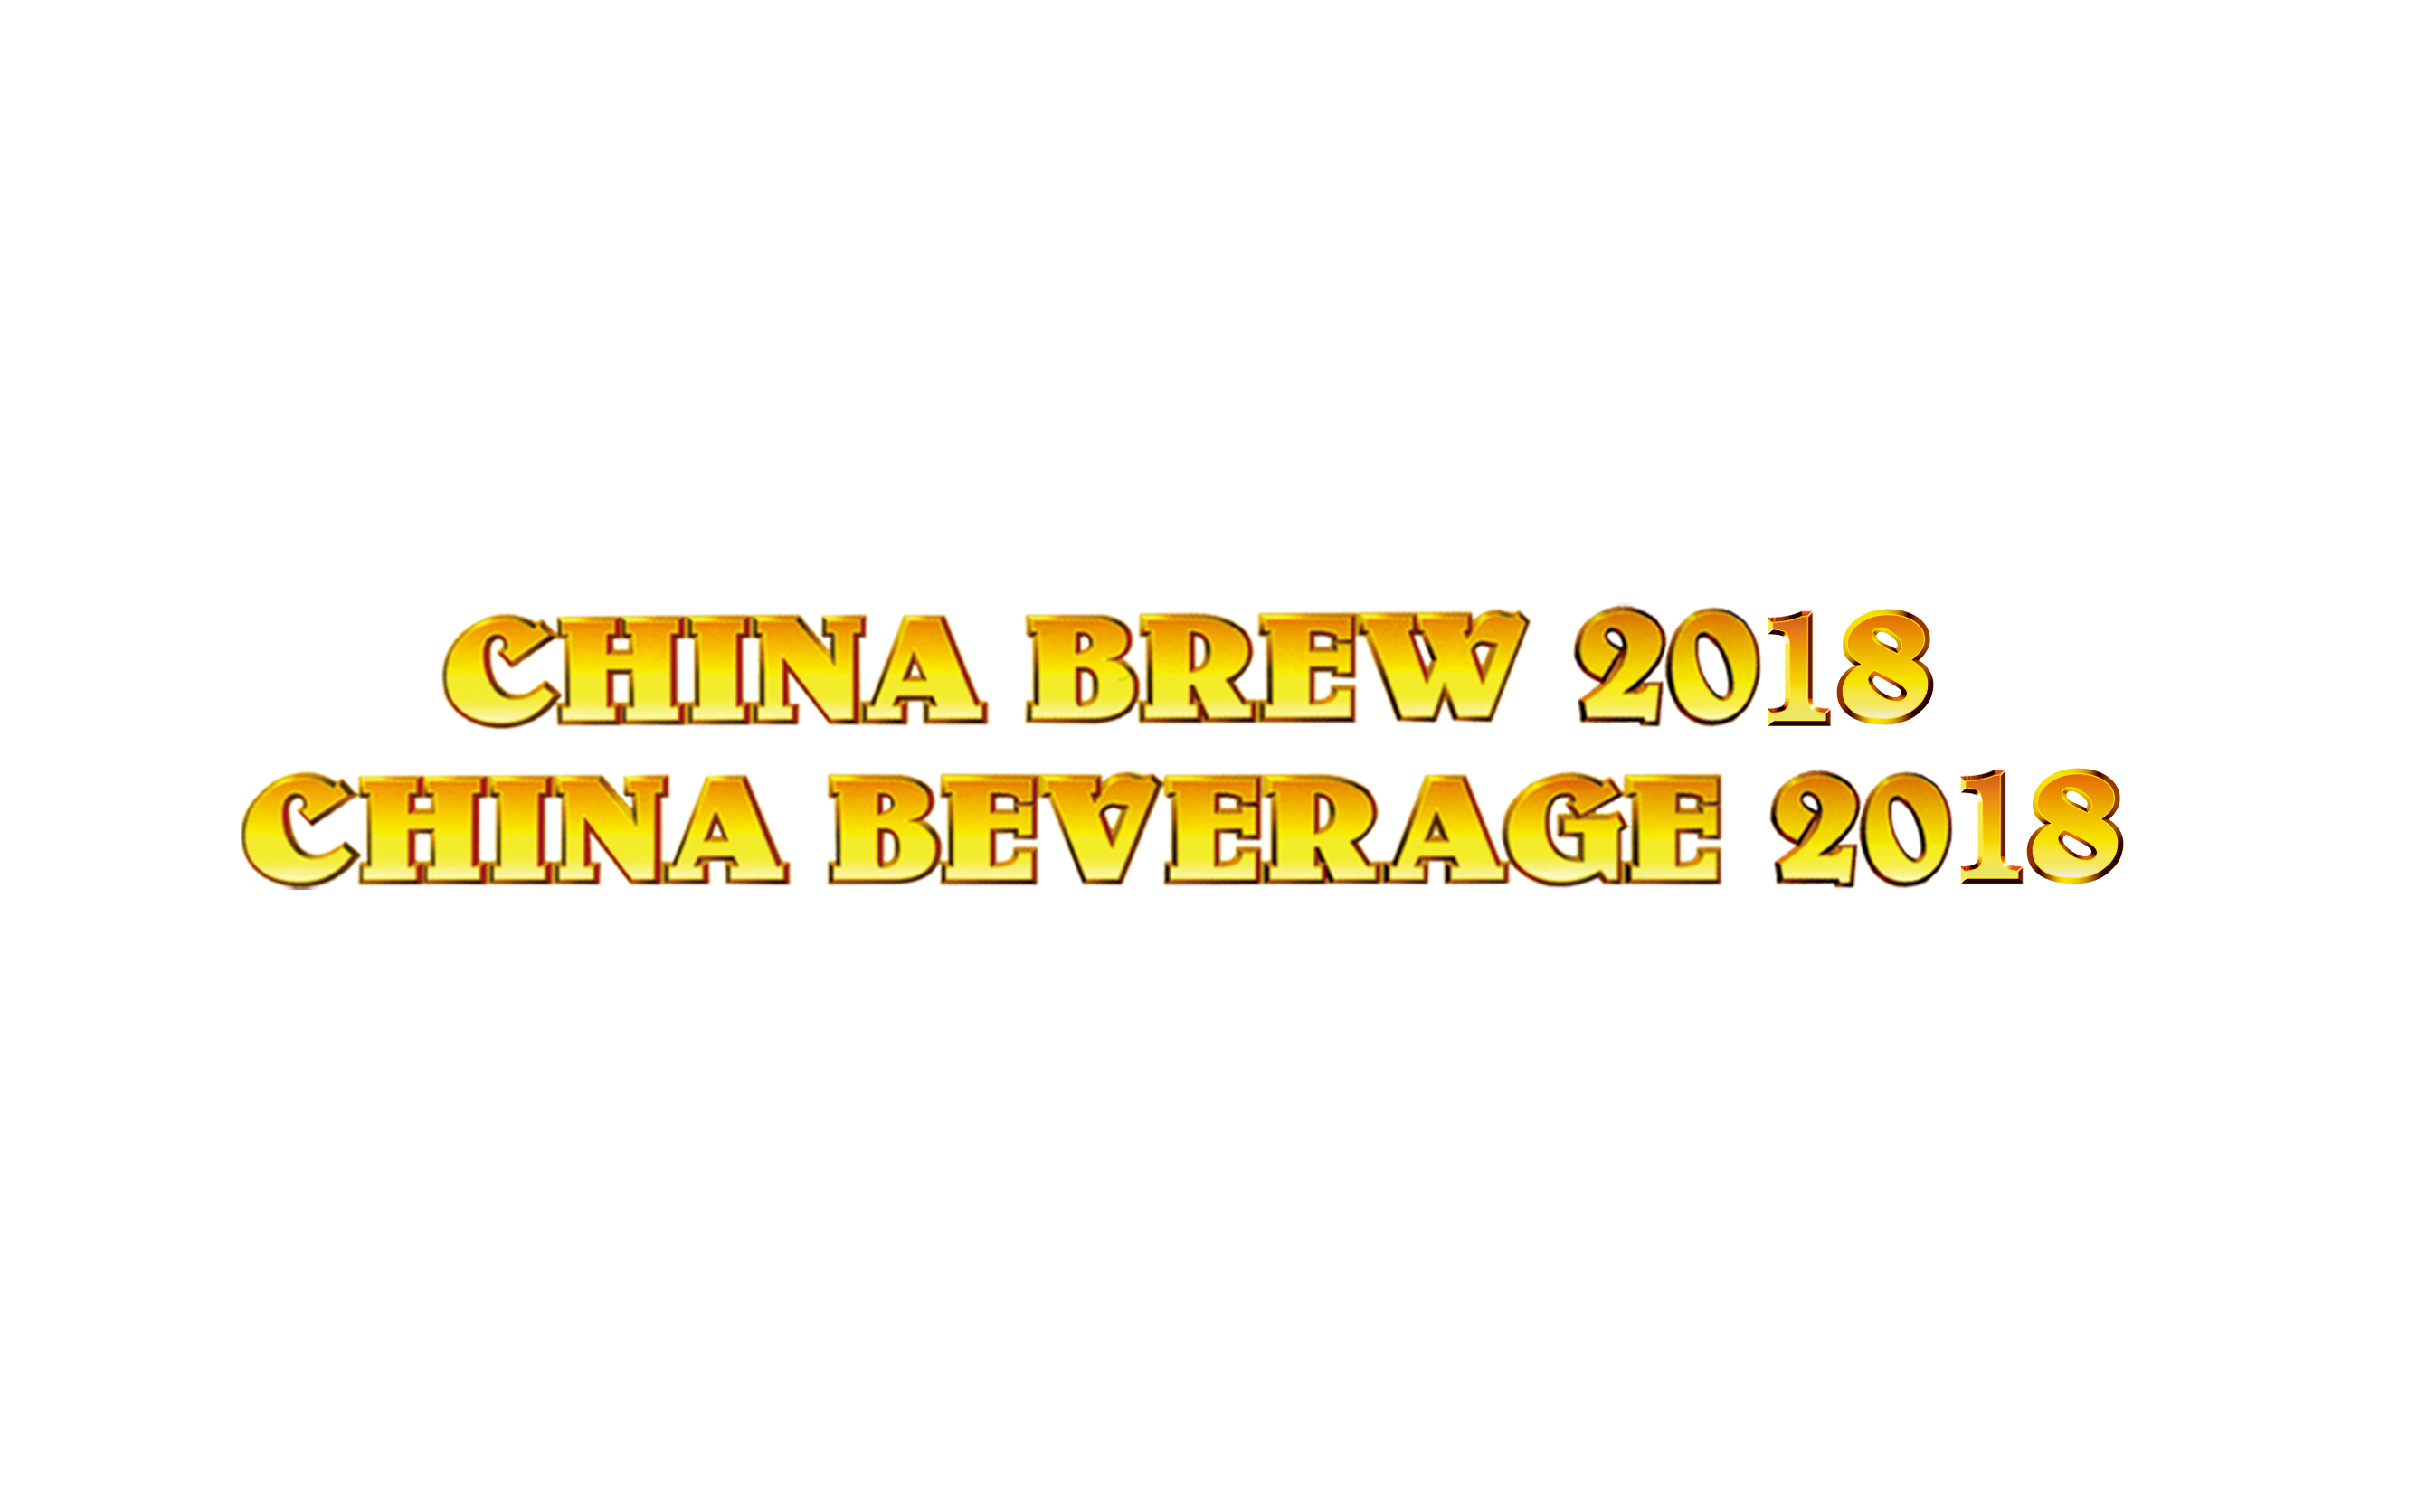 Meet us at CBB - China Brew, China Beverage